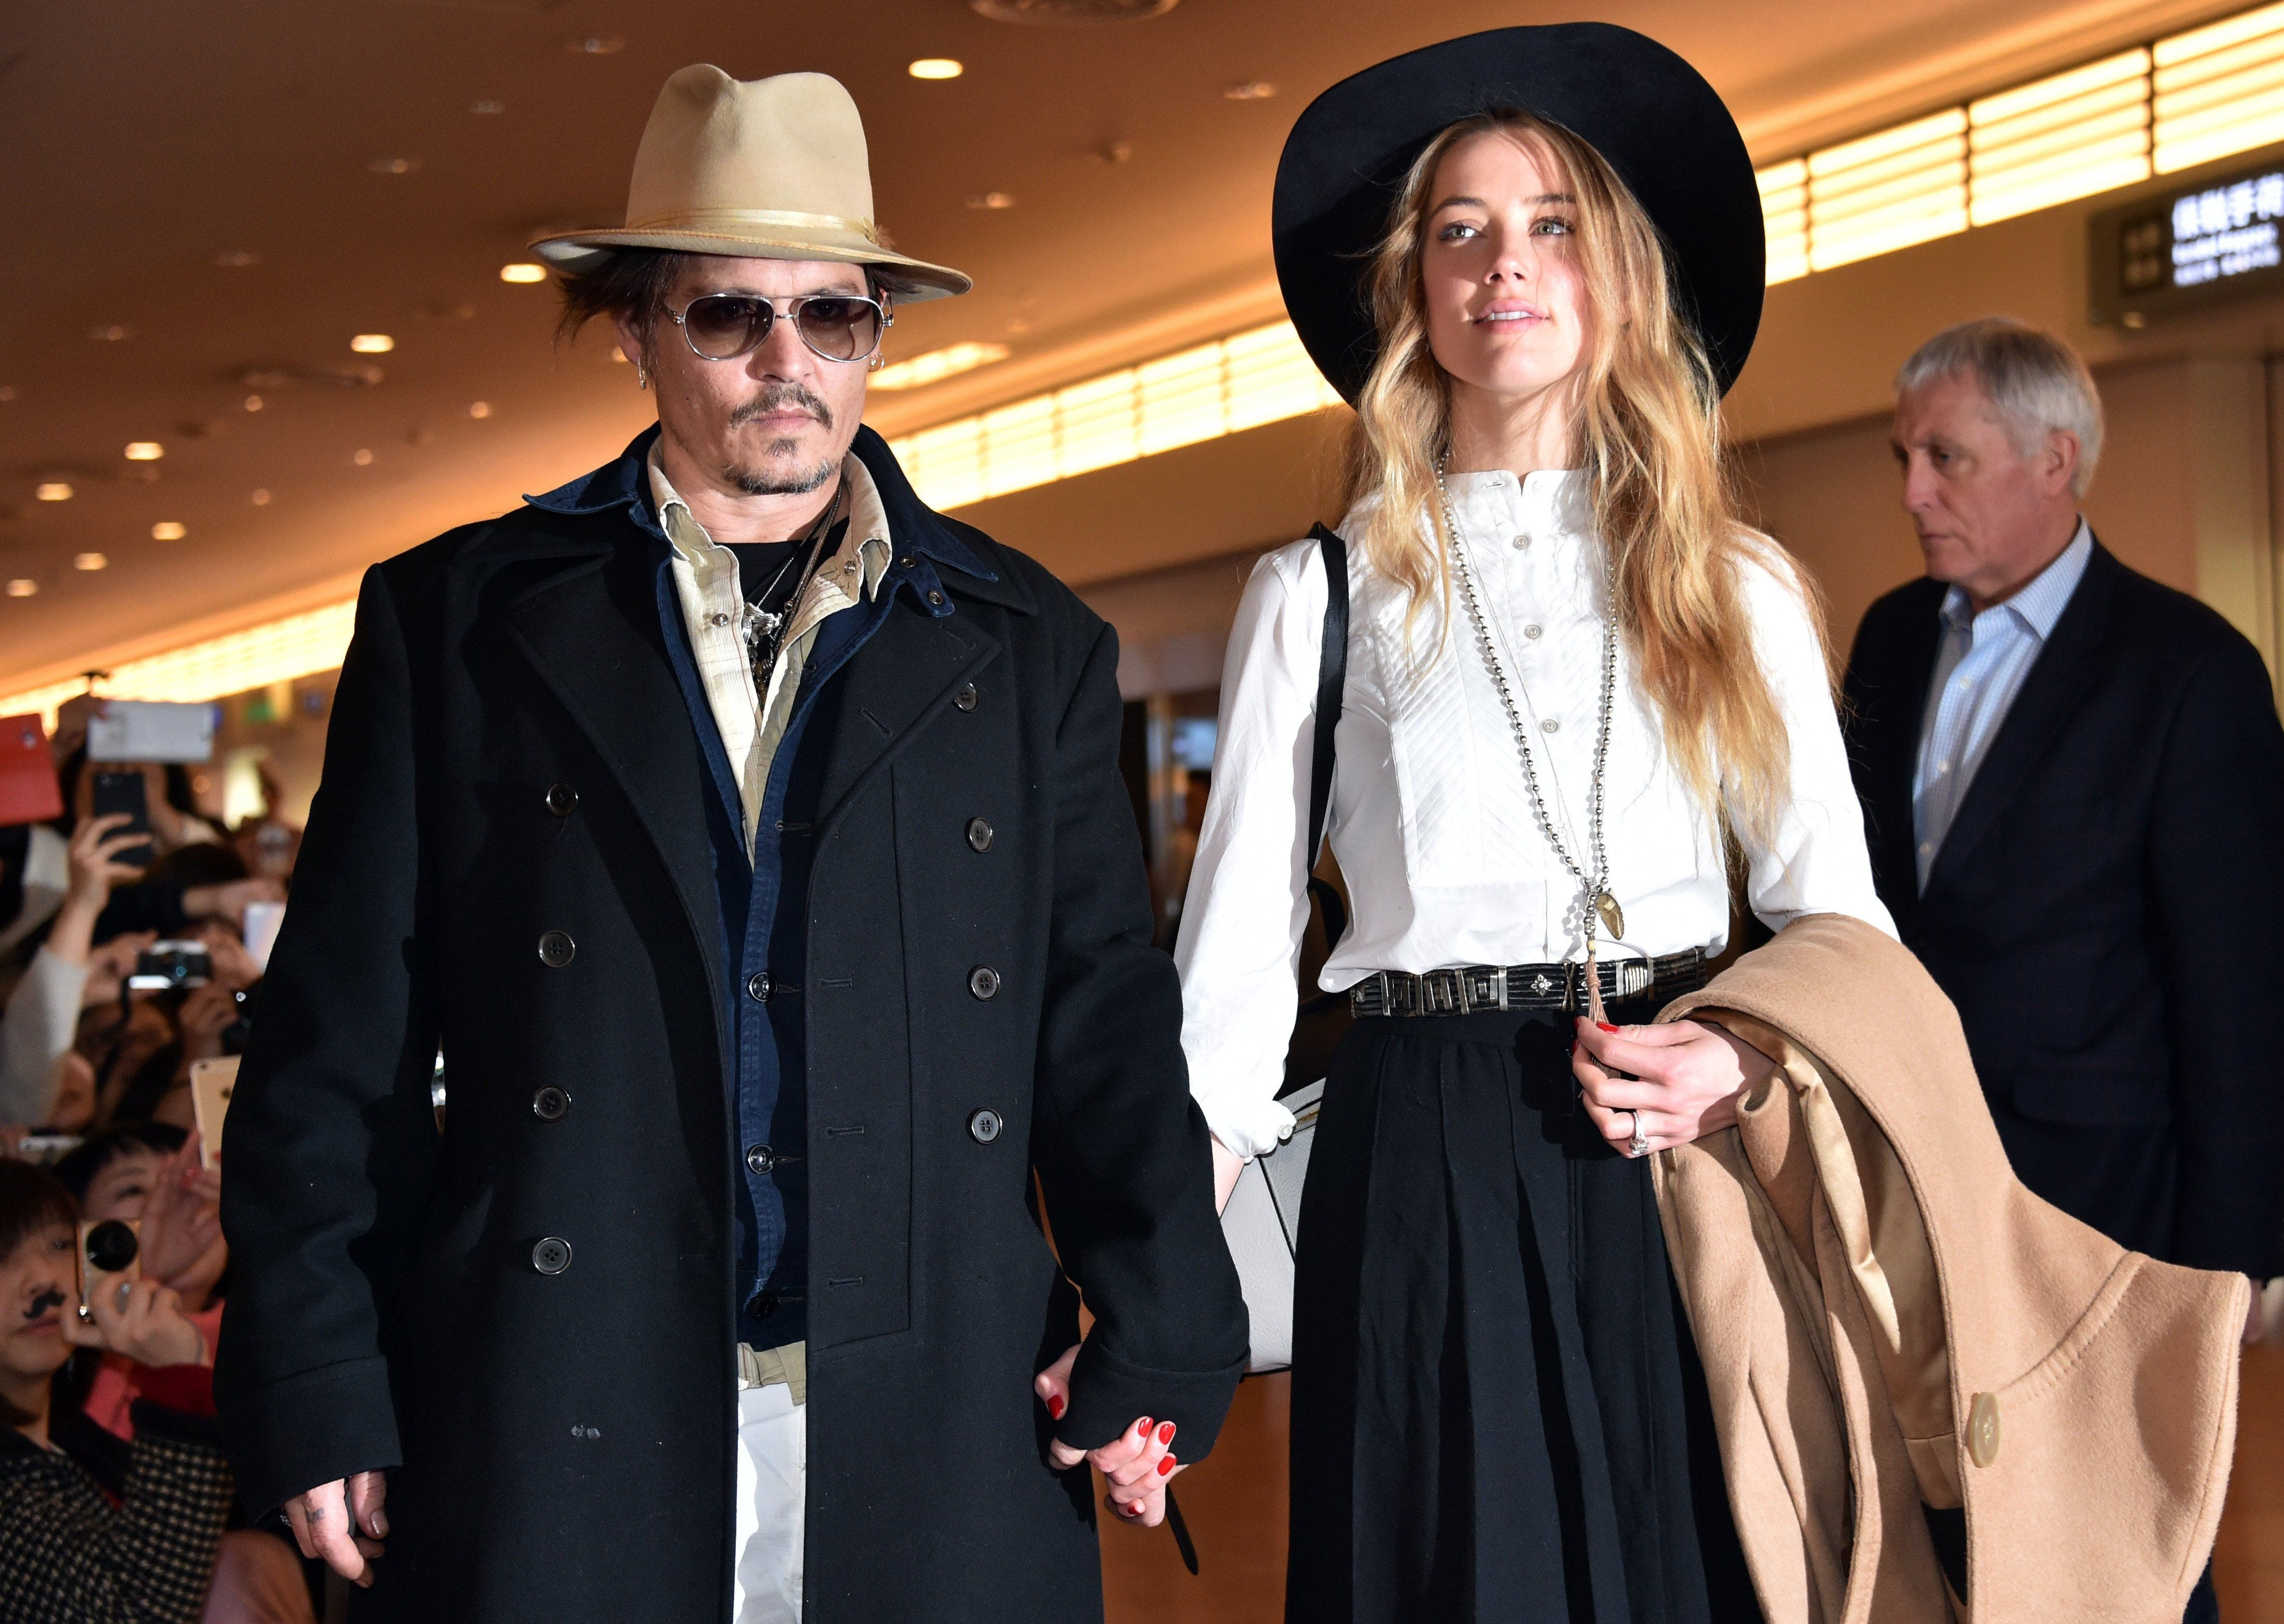 This file photo taken on January 26, 2015 shows US actor Johnny Depp (L) accompanied by his wife, US actress and model Amber Heard (R) after their arrival at Tokyo International Airport. (AFP)